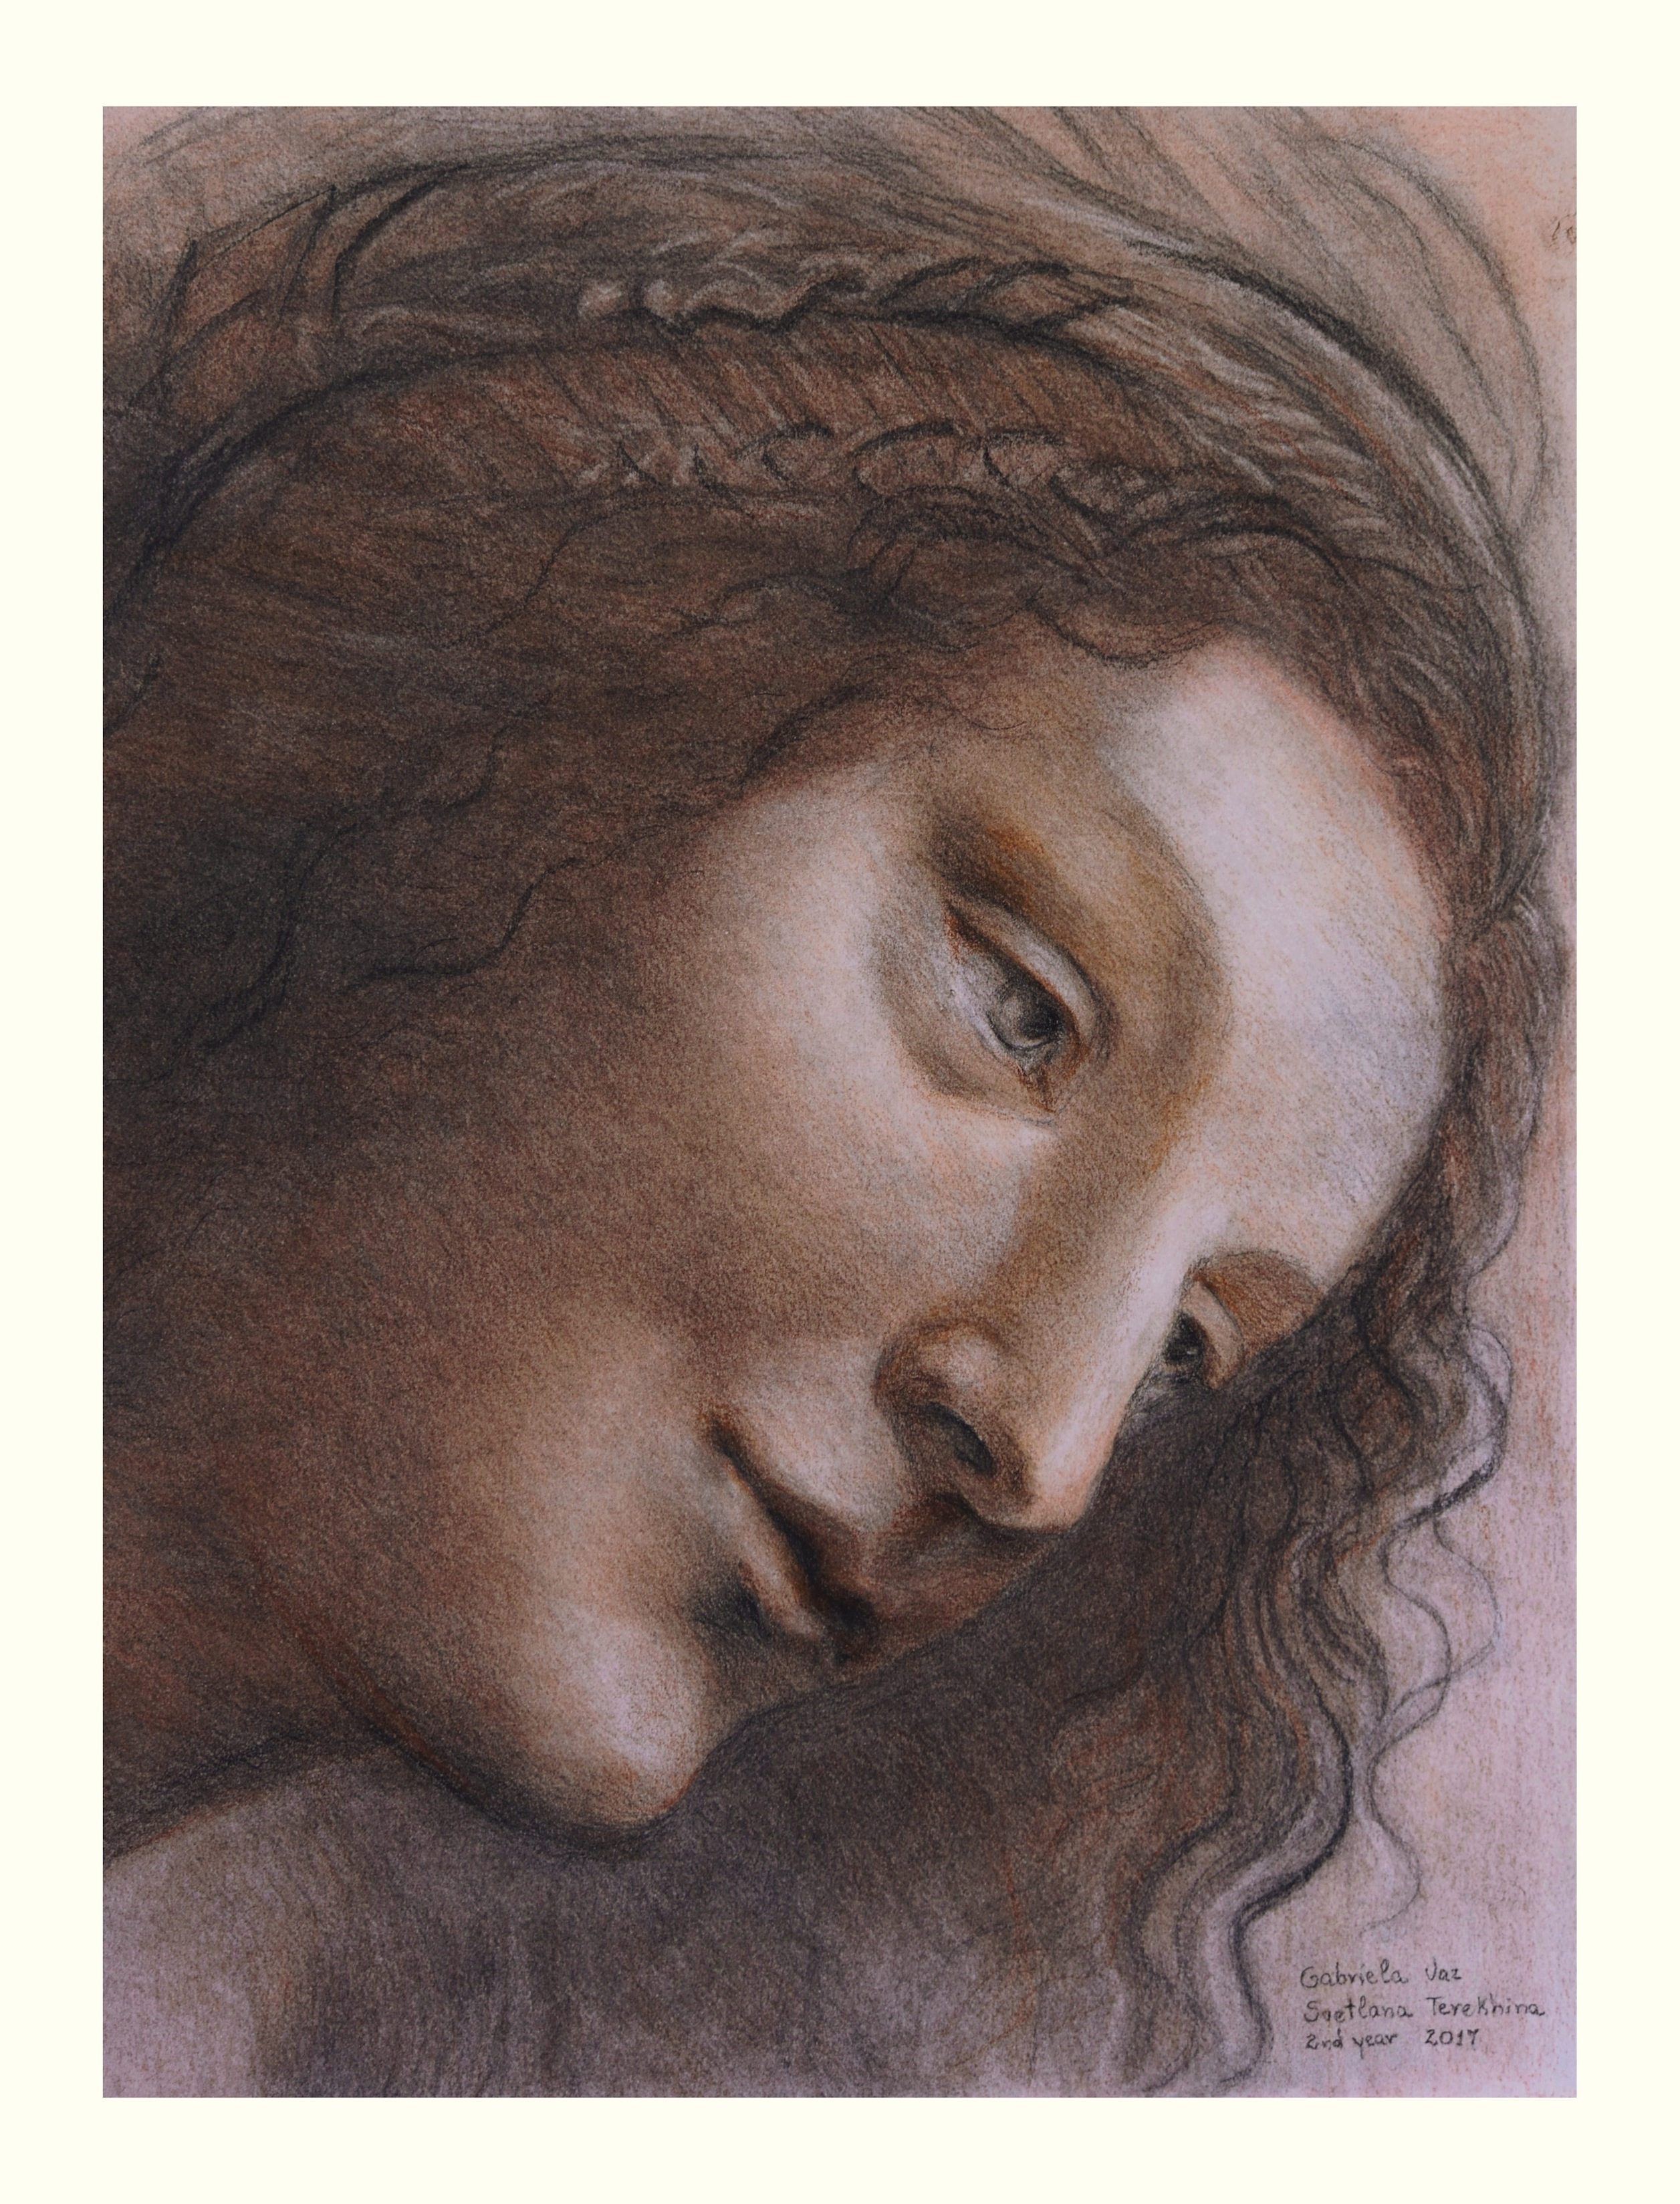 Copy of the drawing Head of the Virgin (1510-1513) by Leonardo da Vinci, soft pastel on toned paper, 40 x 30 cm, 2017